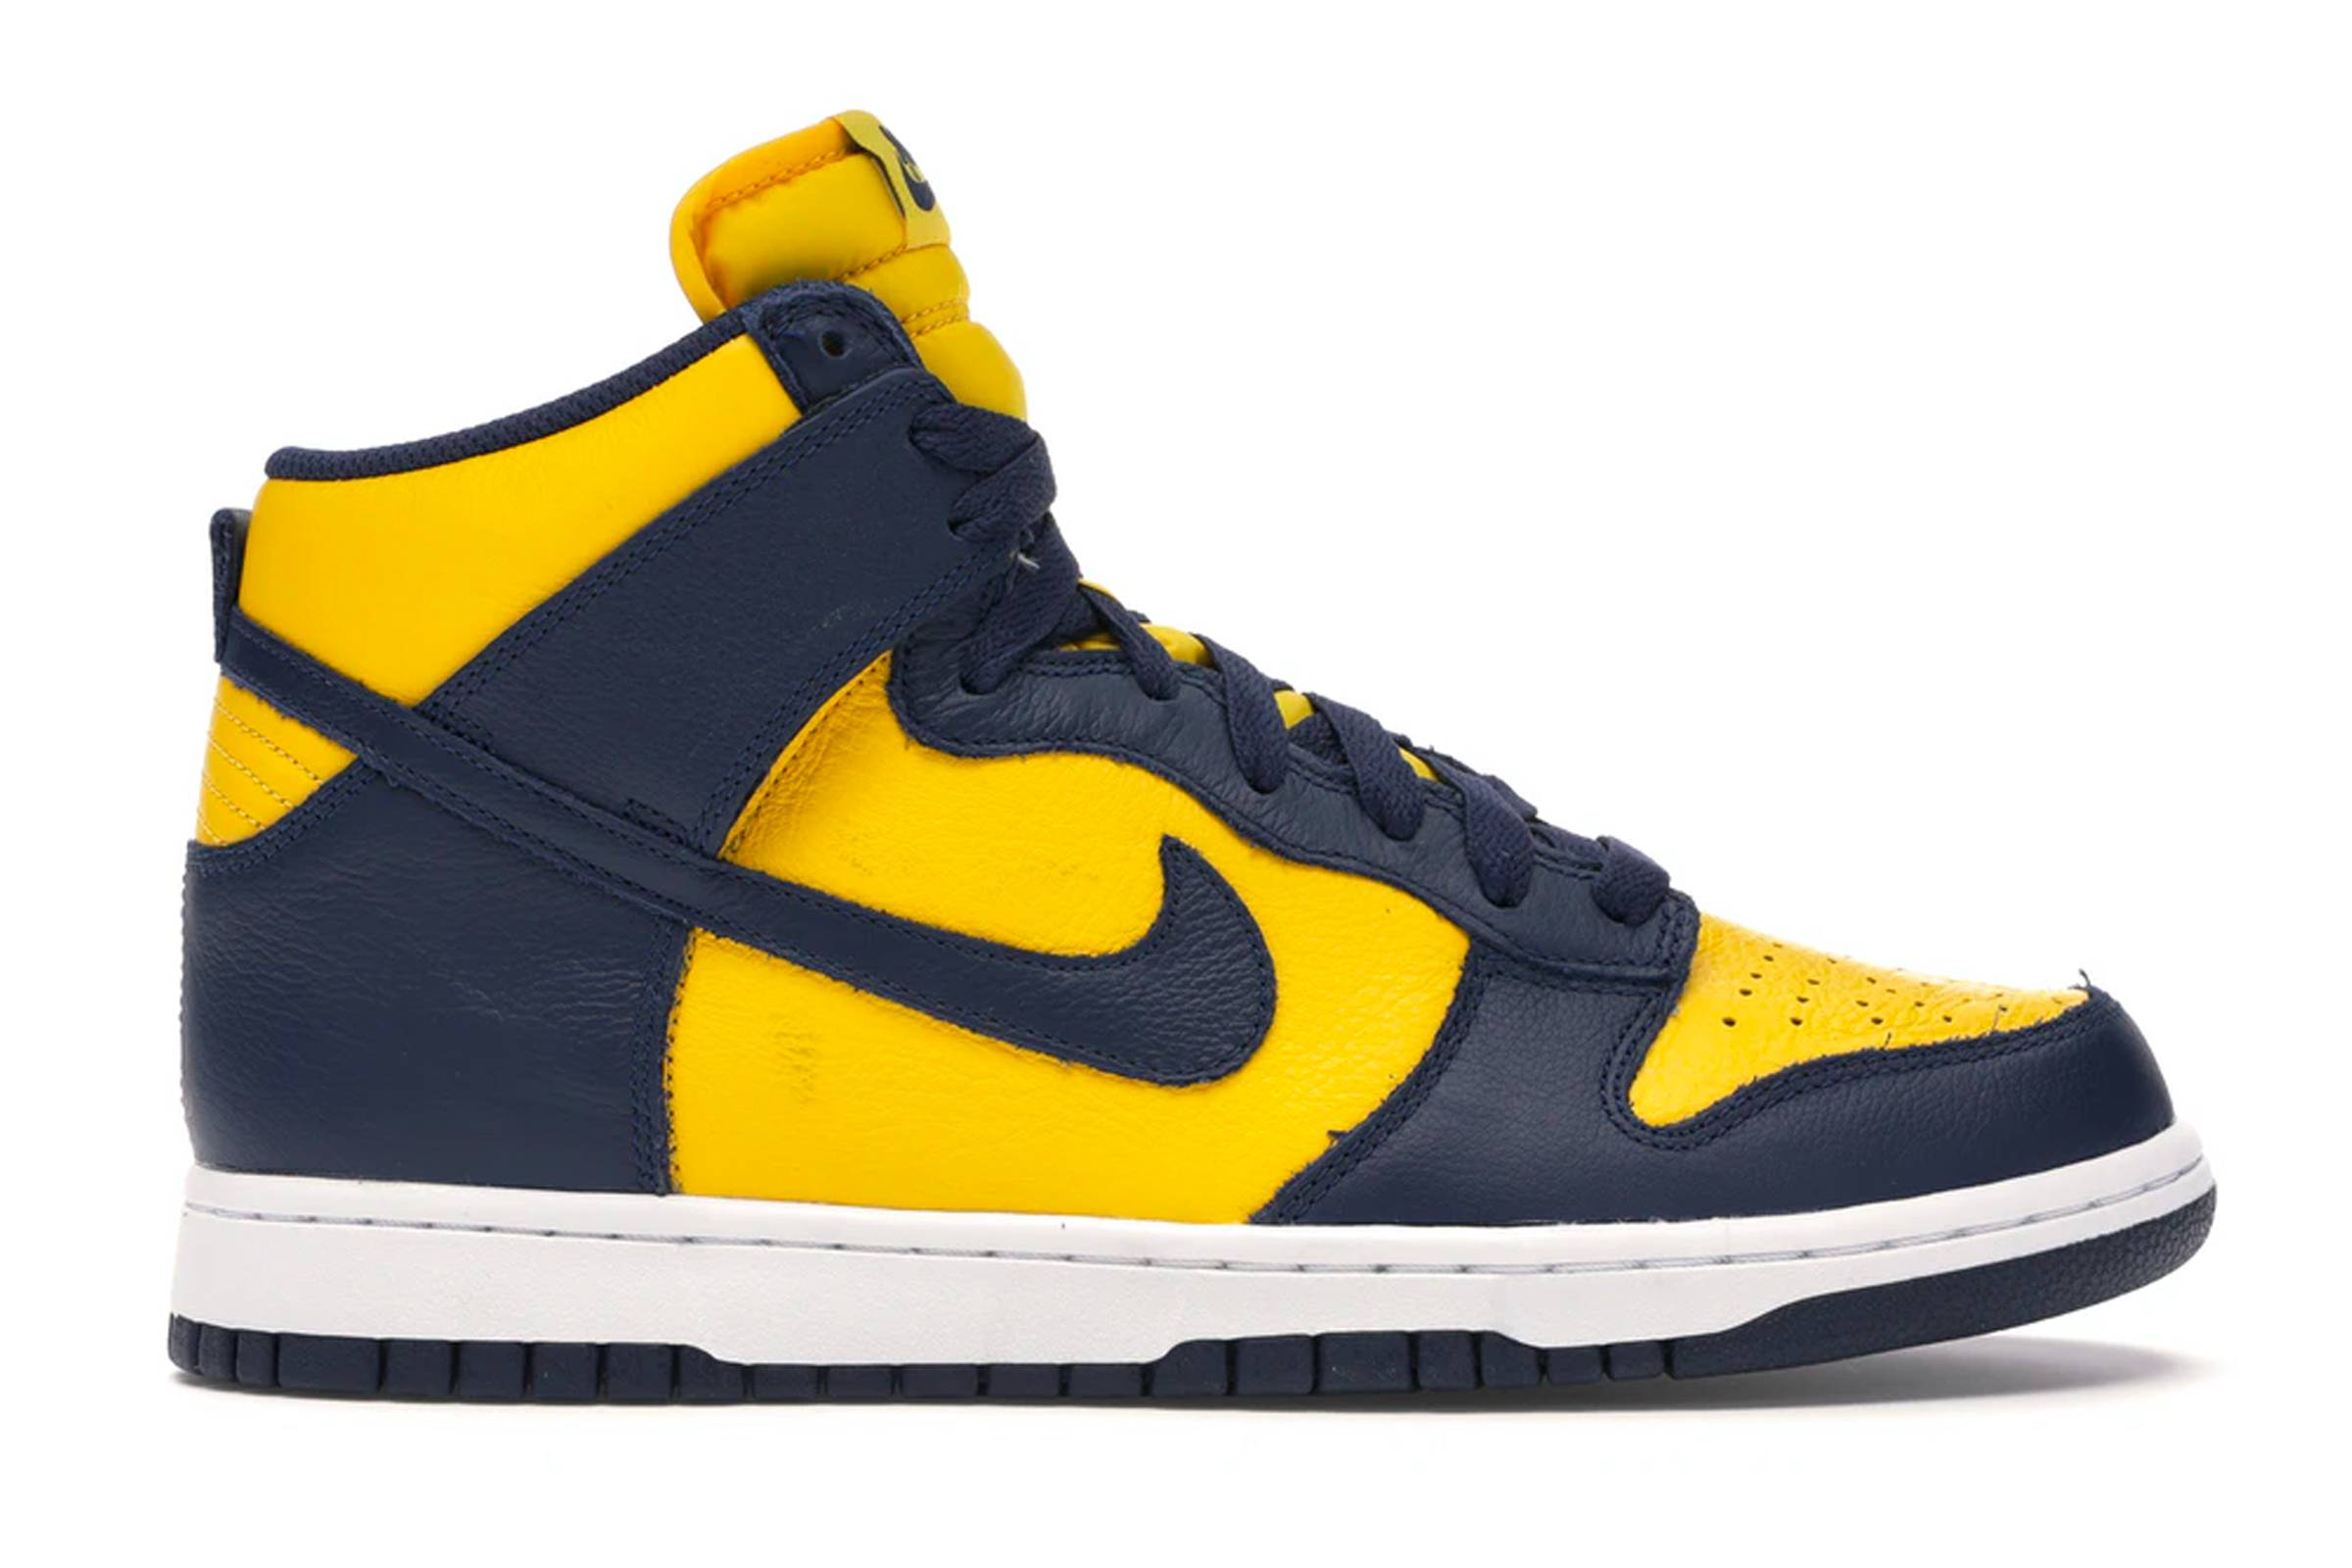 A Shoe For Every Subculture: A Brief History of the Nike Dunk